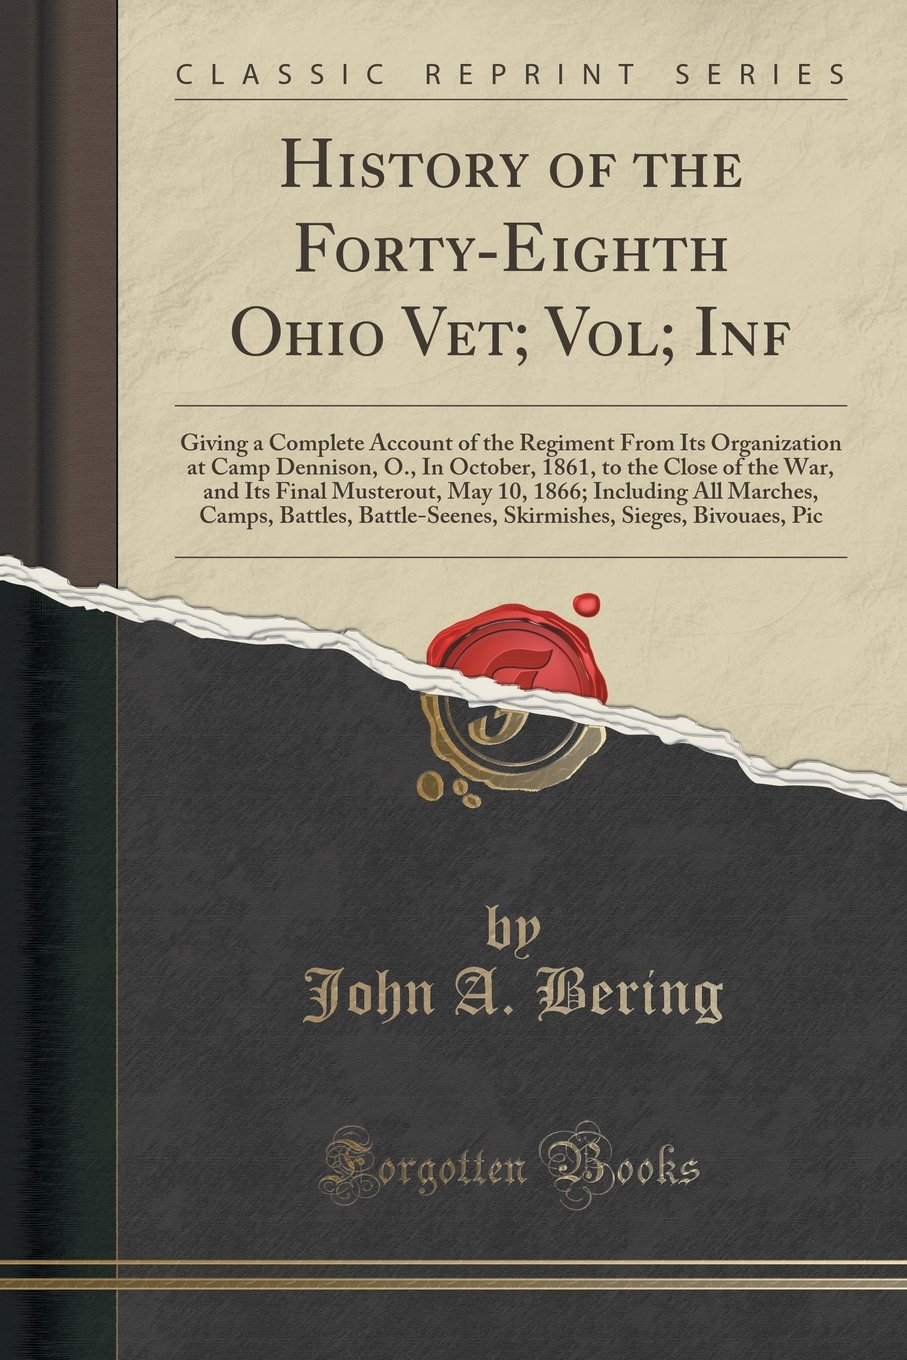 Read Online History of the Forty-Eighth Ohio Vet; Vol; Inf: Giving a Complete Account of the Regiment From Its Organization at Camp Dennison, O., In October, ... 1866; Including All Marches, Camps, Battles, pdf